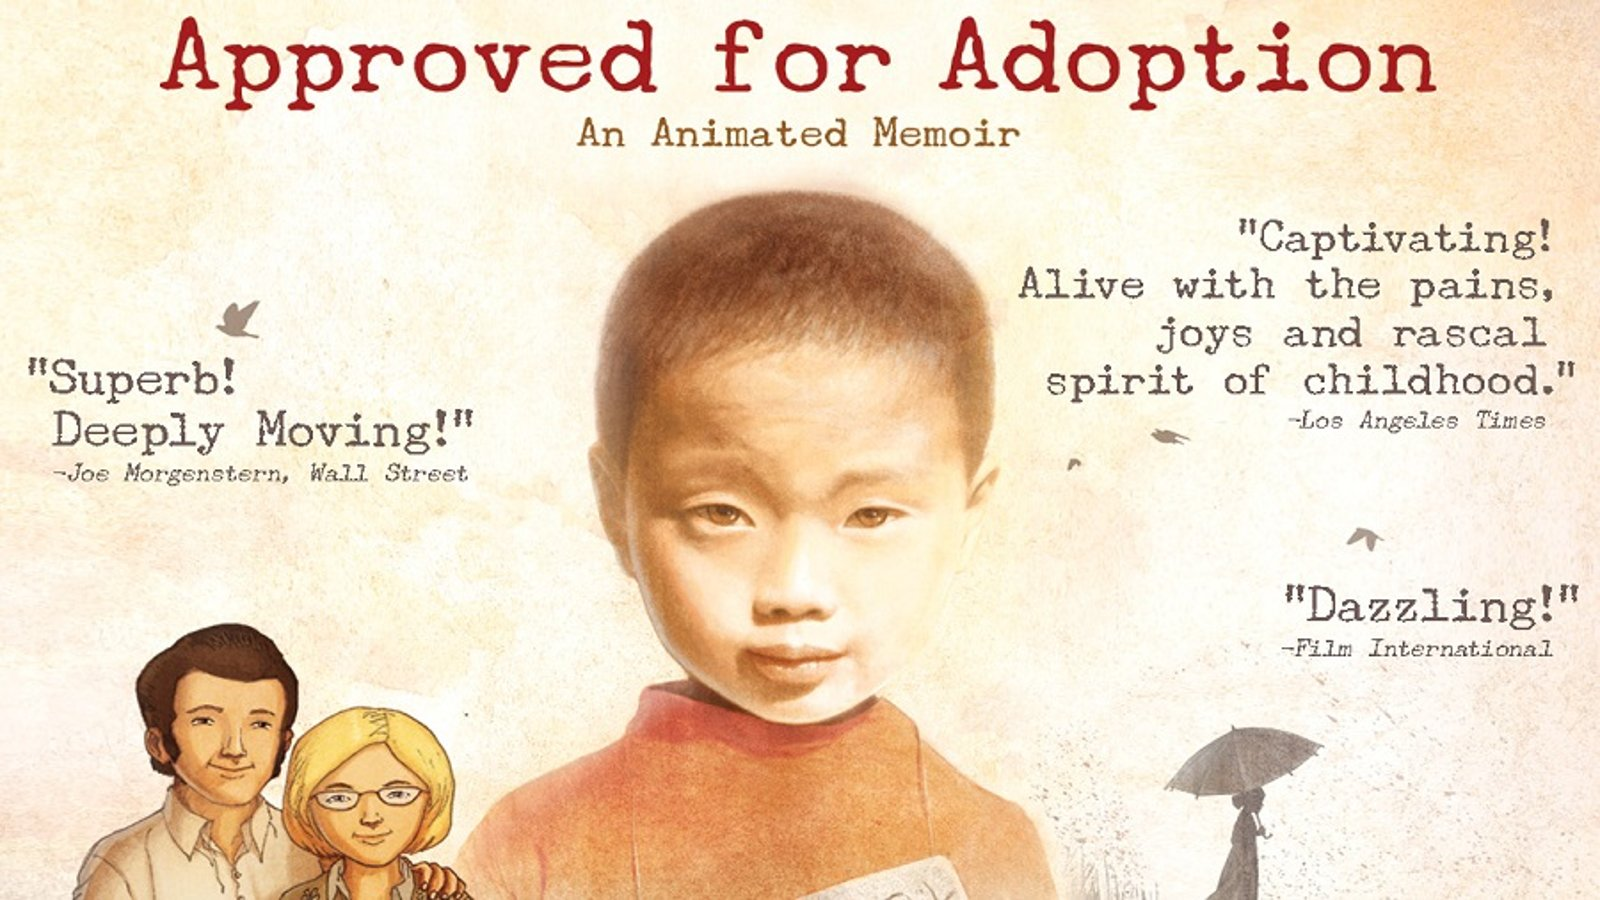 Approved for Adoption - The Story of a Boy Stranded Between Two Cultures